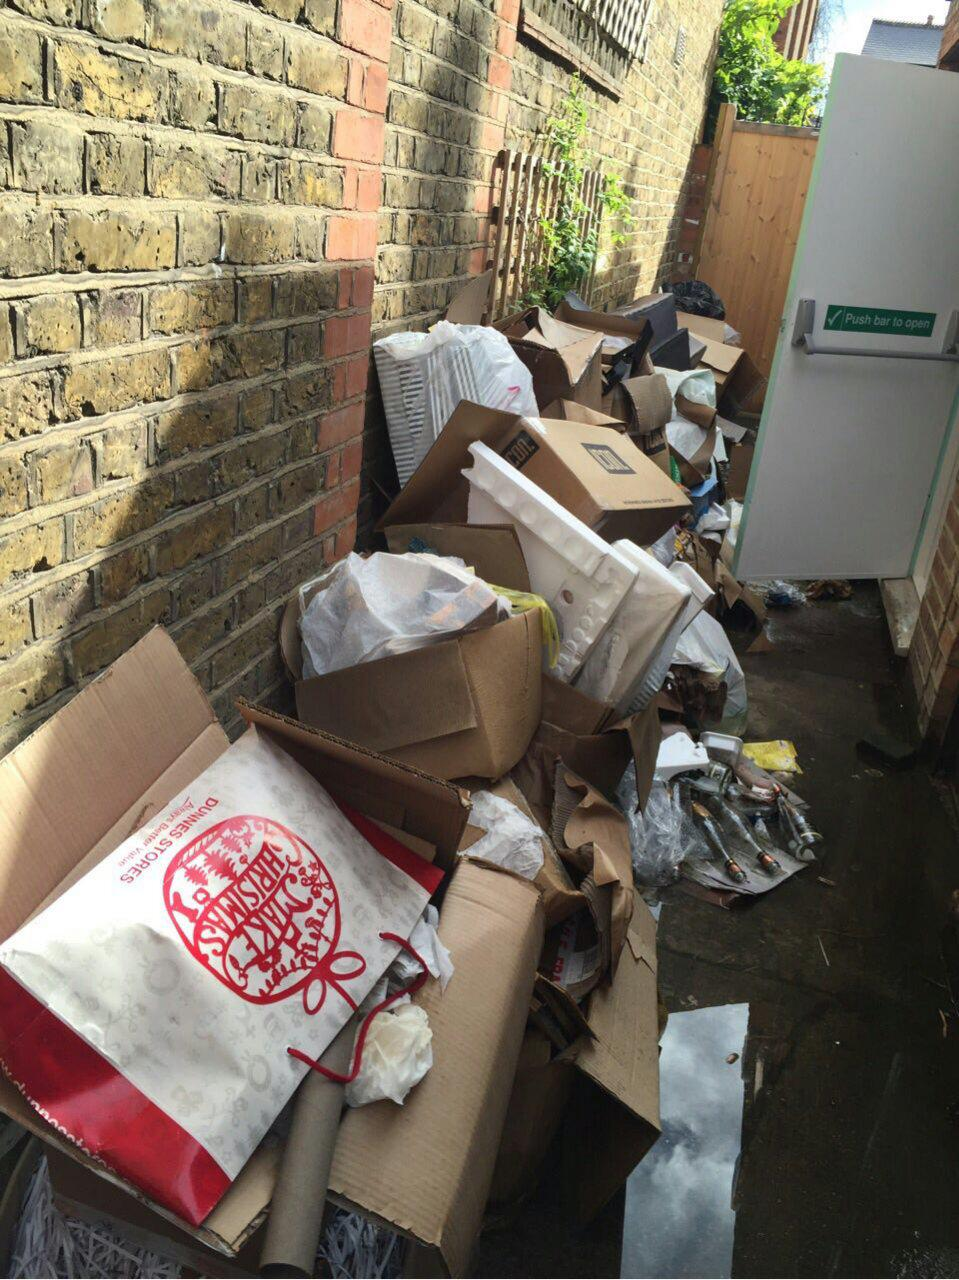 Knightsbridge refuse disposal SW1